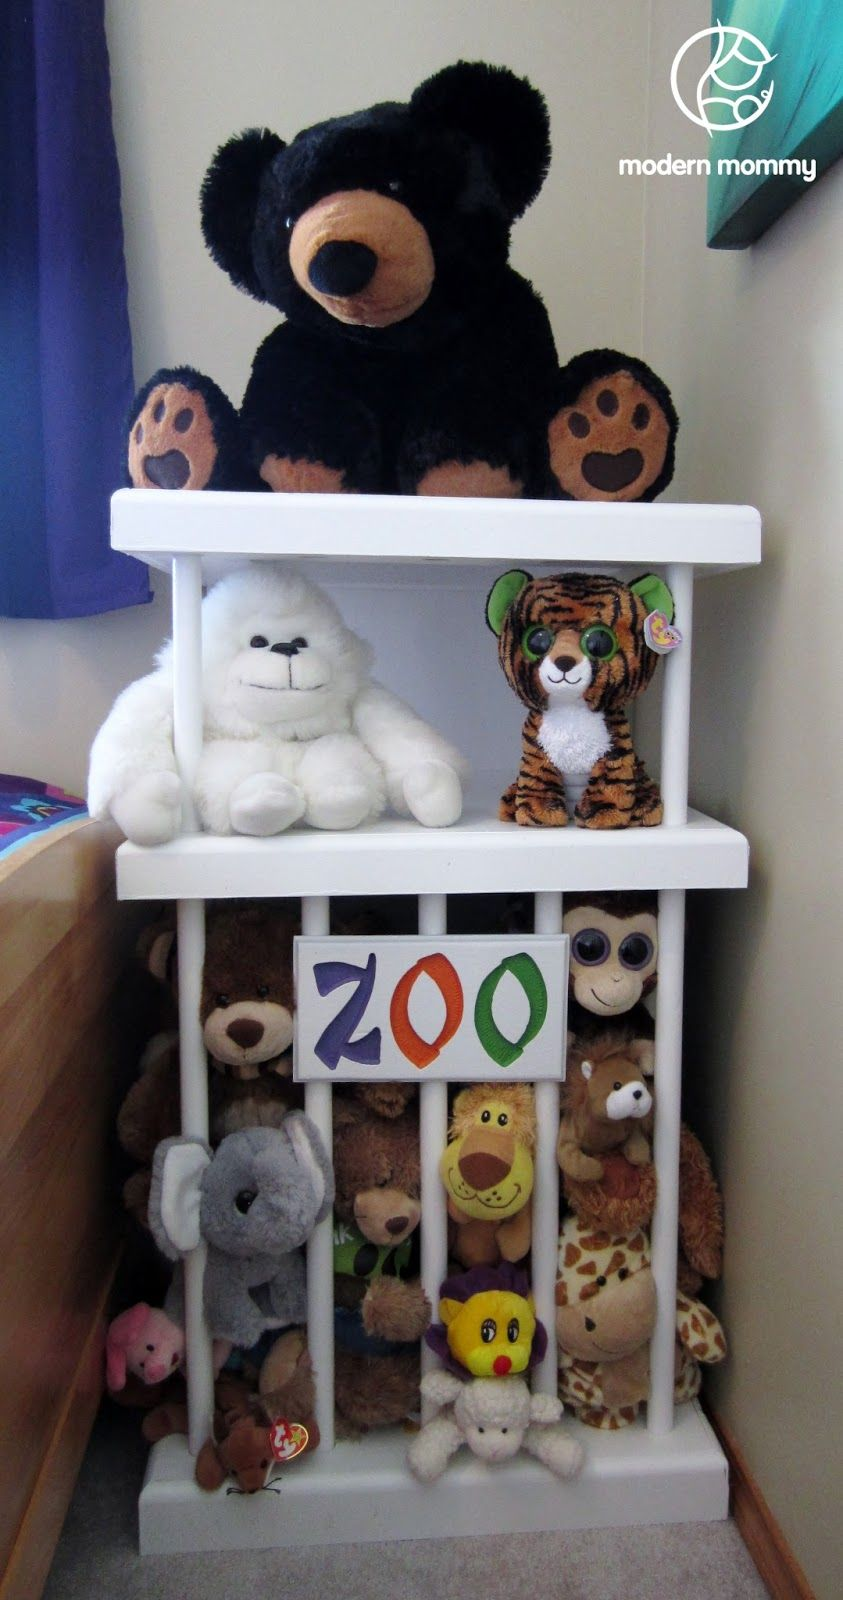 Modern Mommy Our Zoo - Stuffed Animal Storage & Modern Mommy: Our Zoo - Stuffed Animal Storage | Organization ...